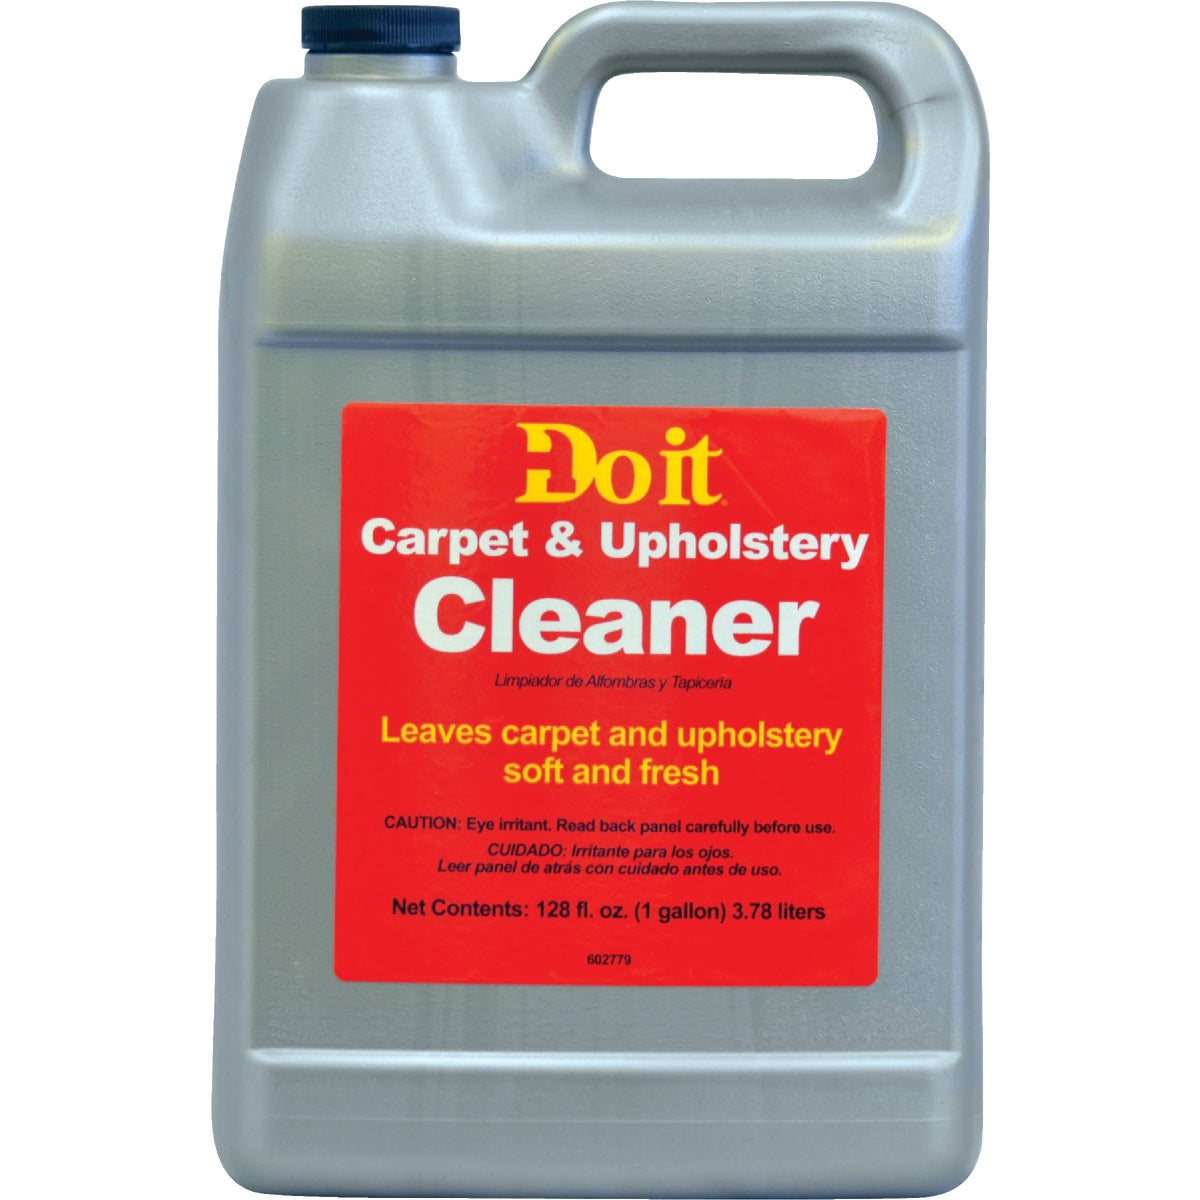 1GAL CARPET/UPHL CLEANER - DI5430 by Cul Mac Ind